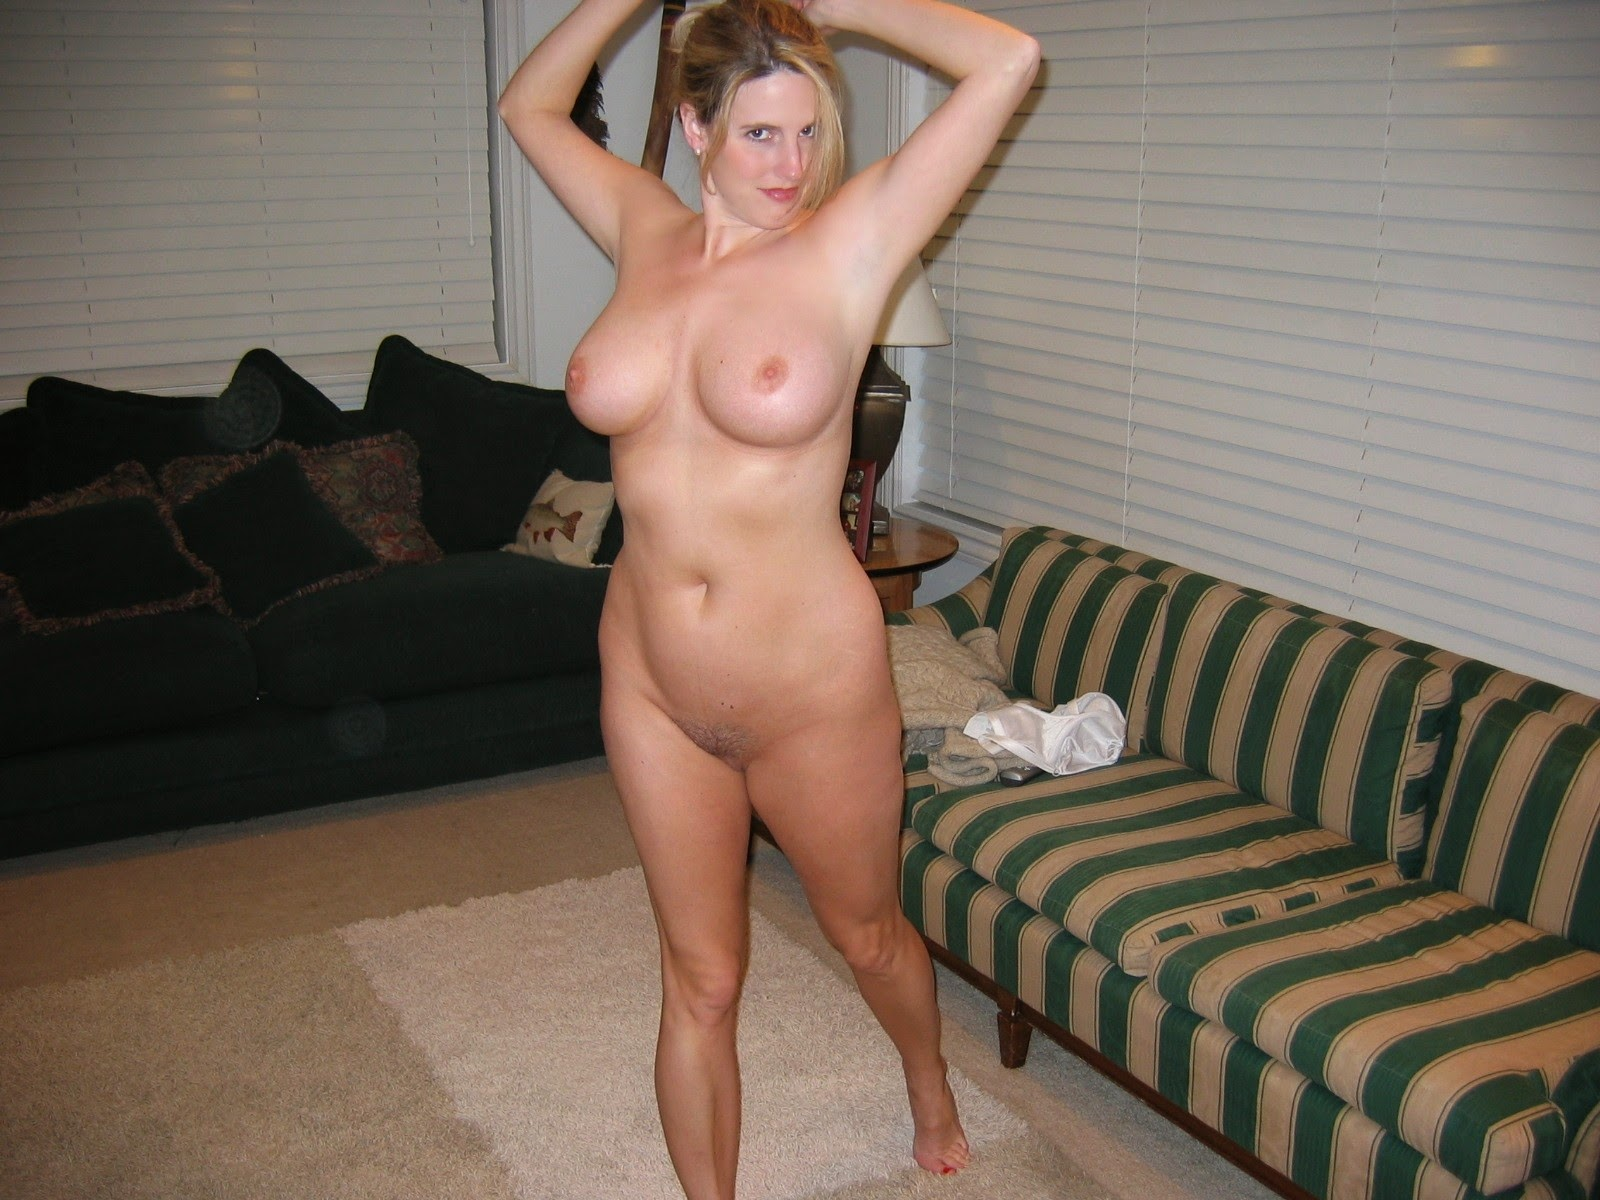 Amateur nude milf full frontal